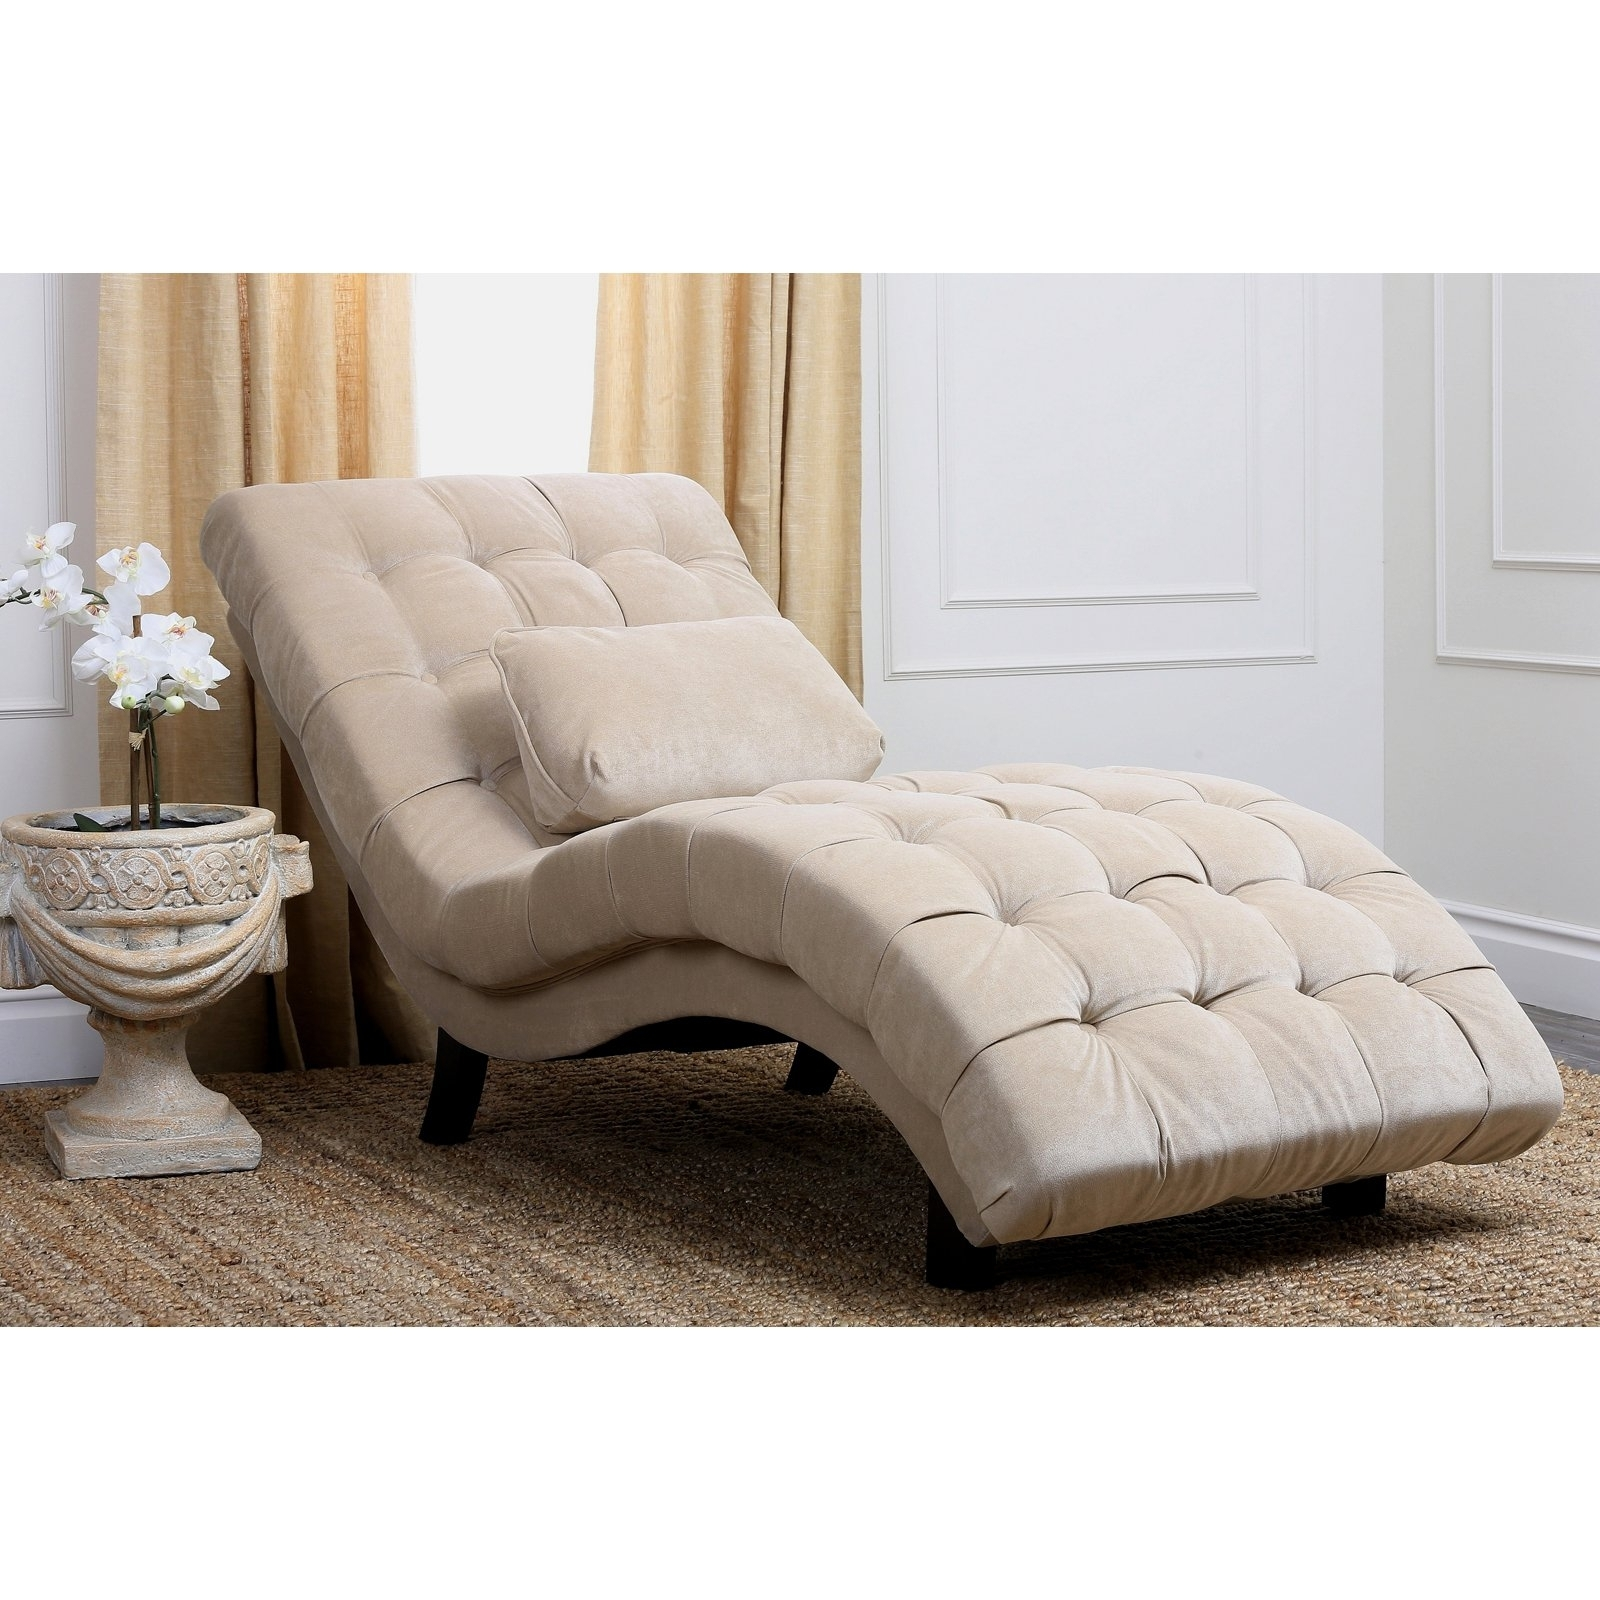 Fashionable Comfortable Chaise Lounge Chairs • Lounge Chairs Ideas With Regard To Comfortable Chaise Lounges (View 7 of 15)